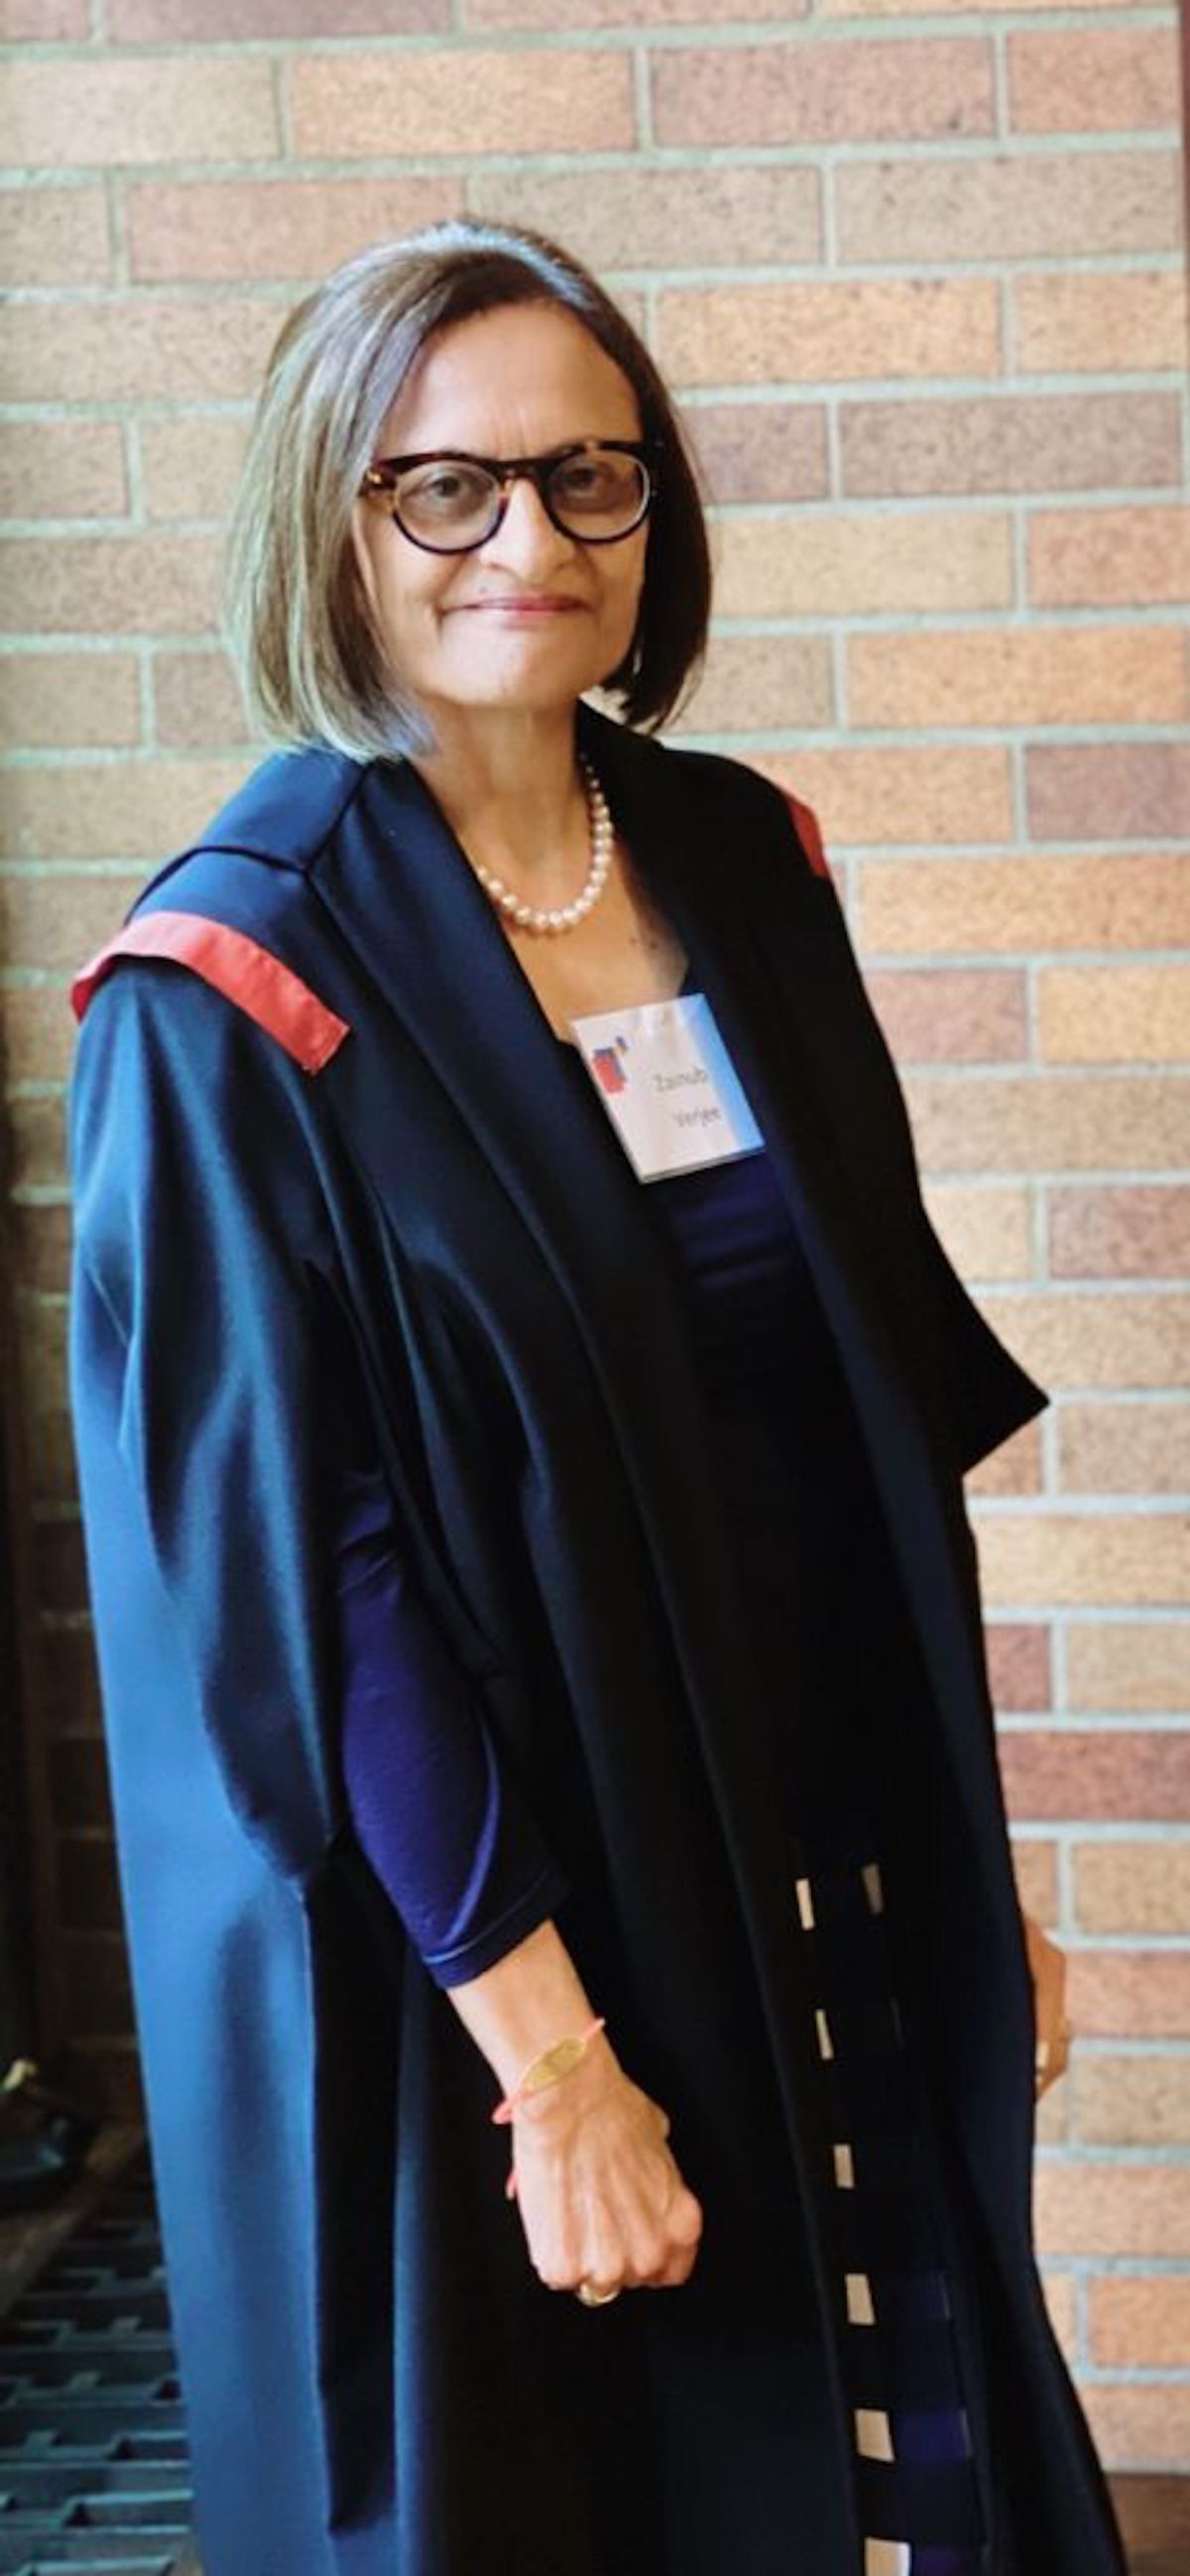 woman in graduation cloak in front of brick wall